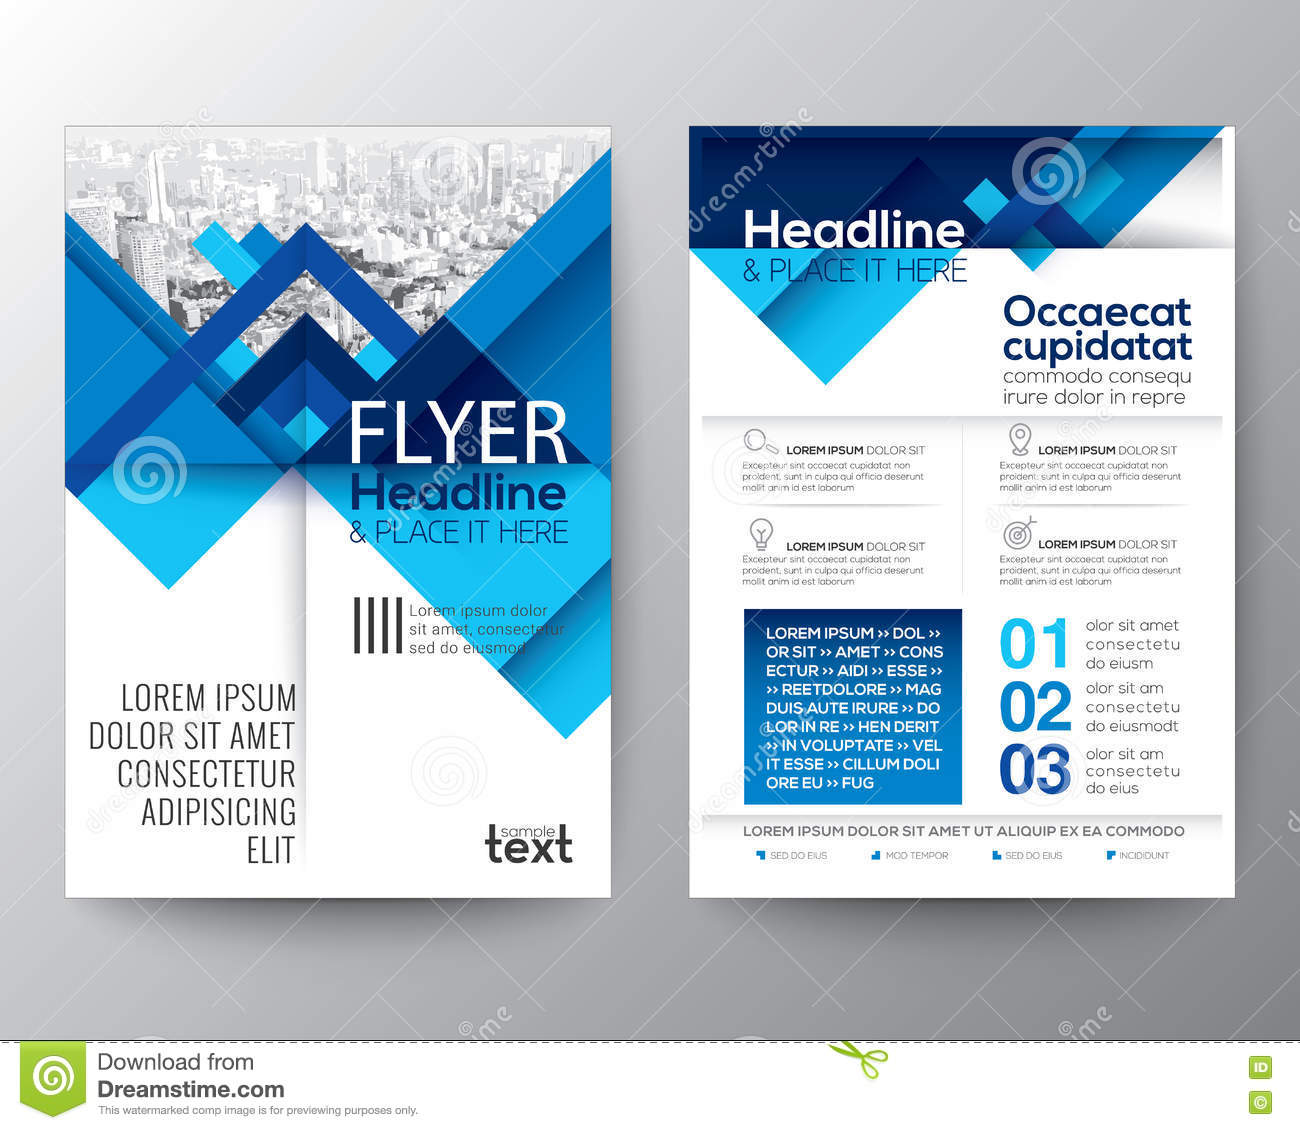 Poster design layout - Free Poster Design Background Background For Poster Brochure Flyer Design Layout Royalty Free Download